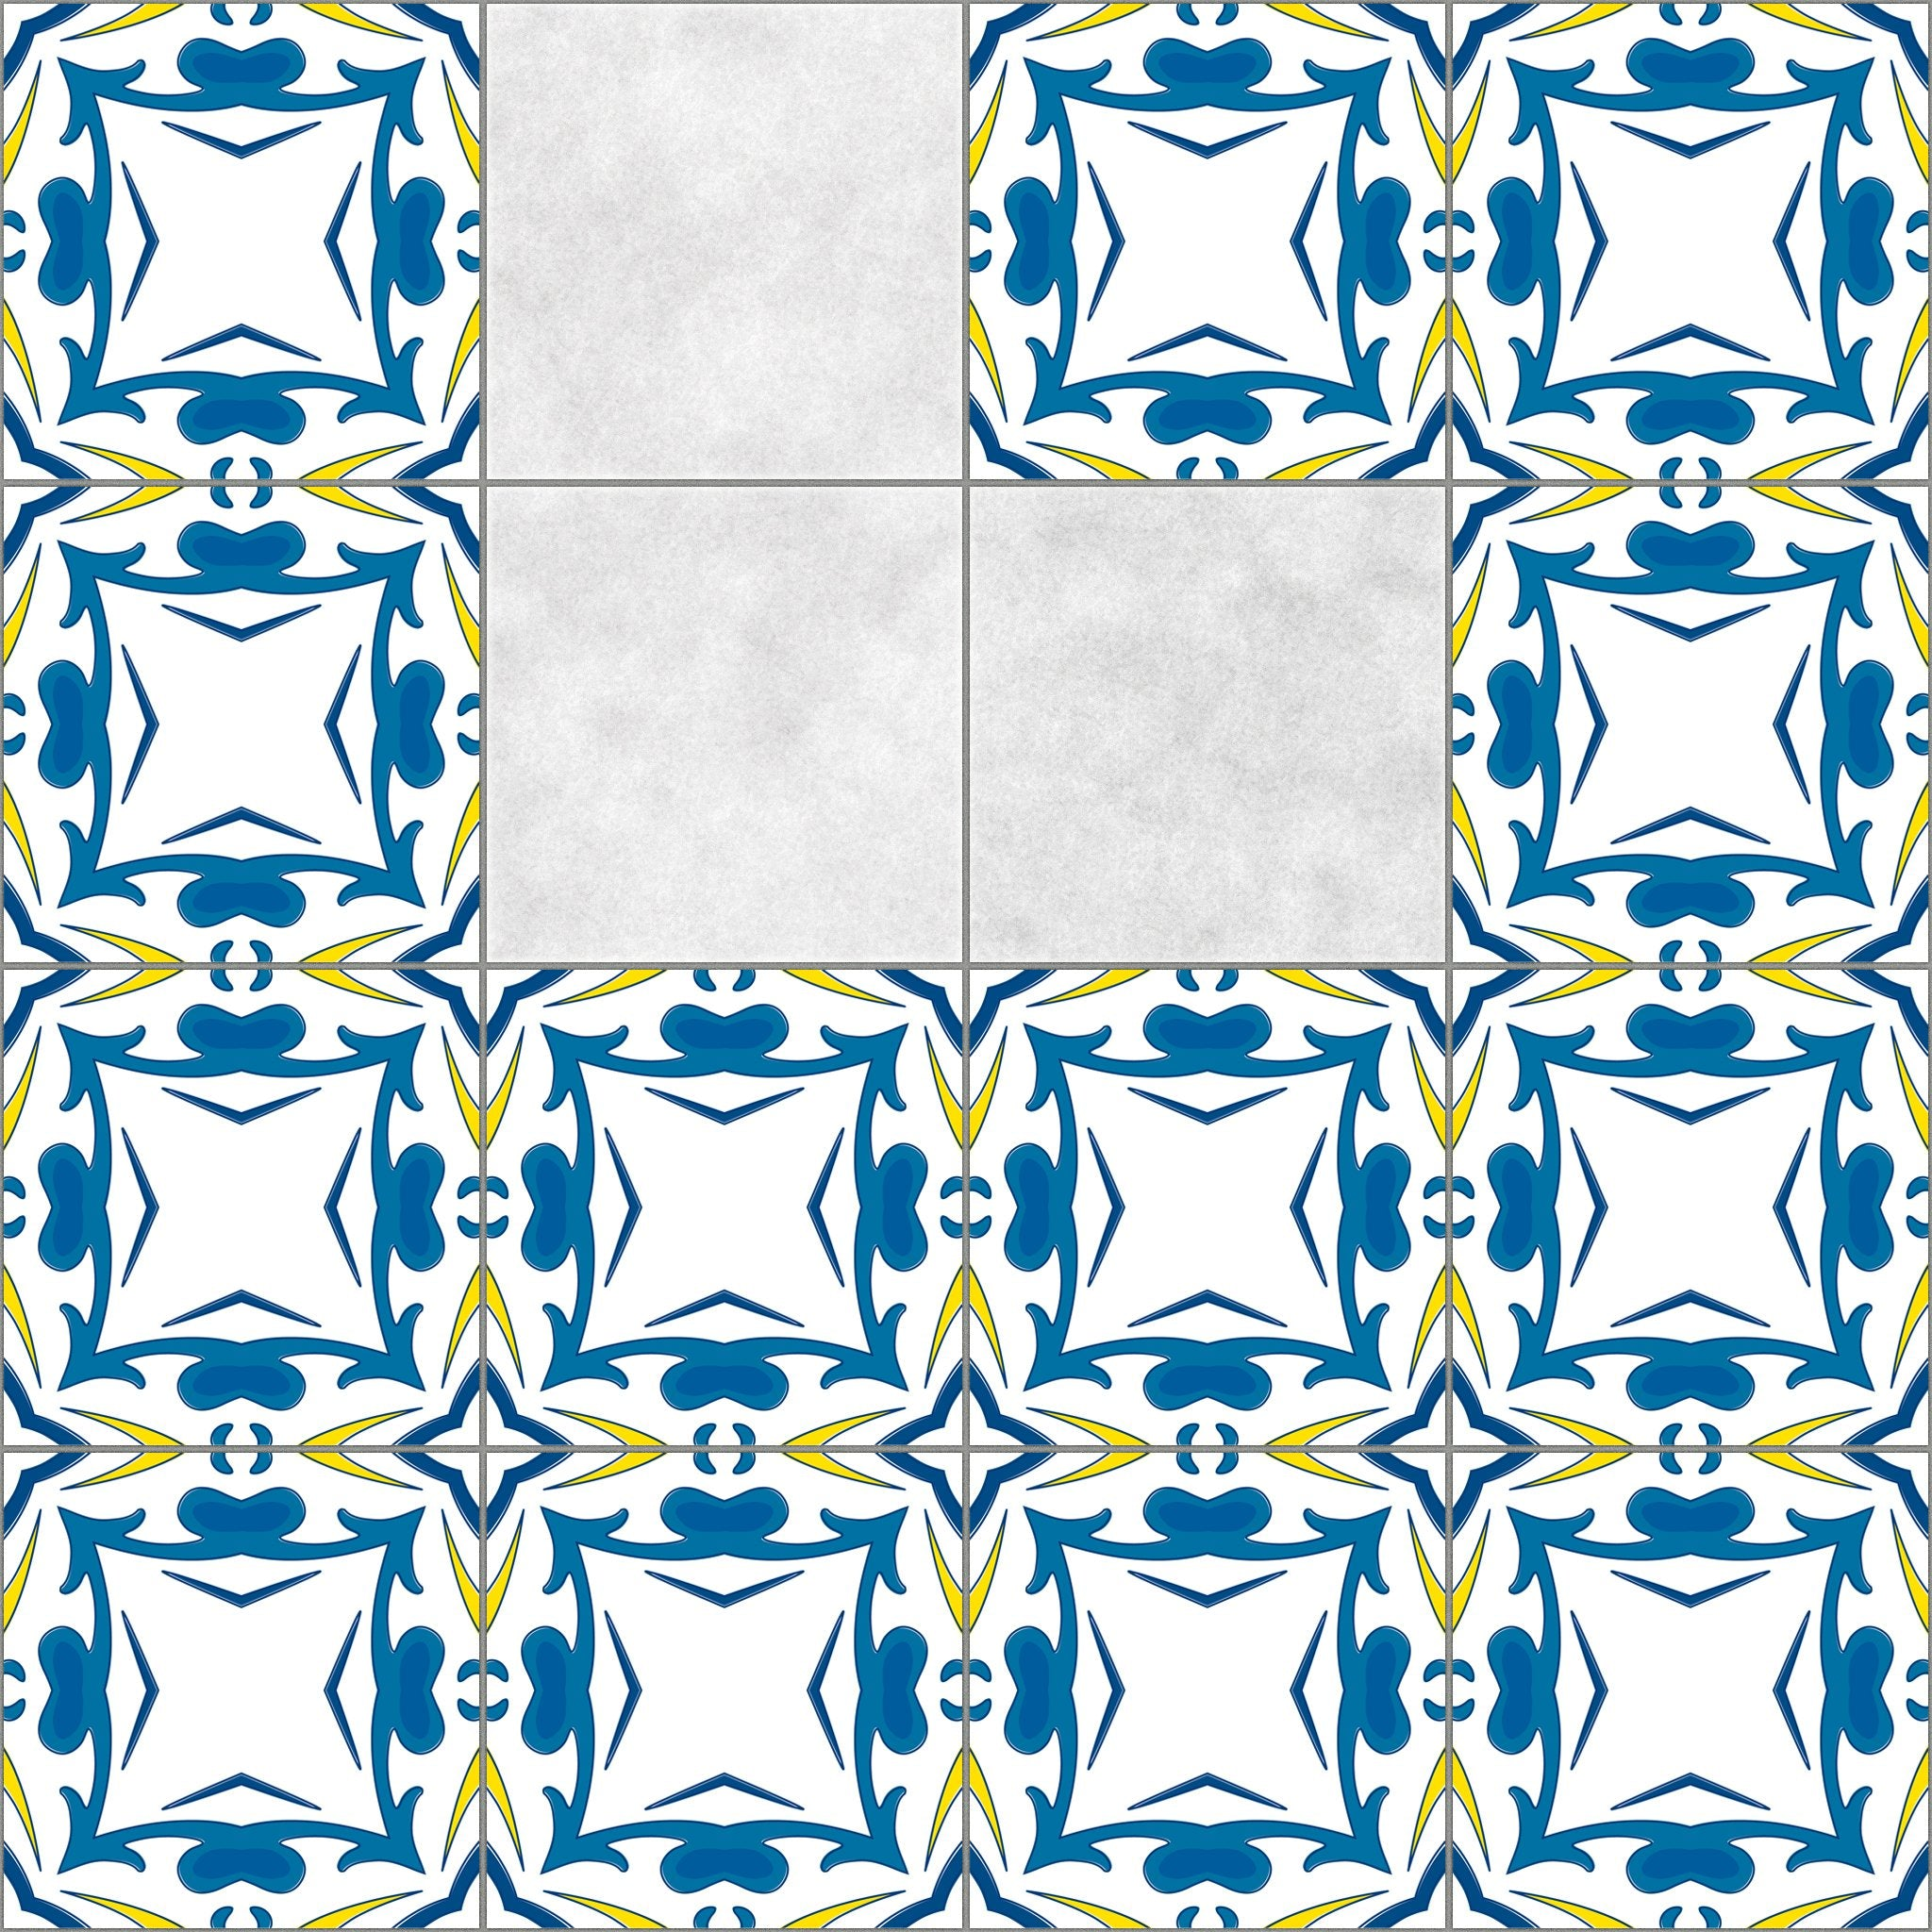 Tile stickers - KP090